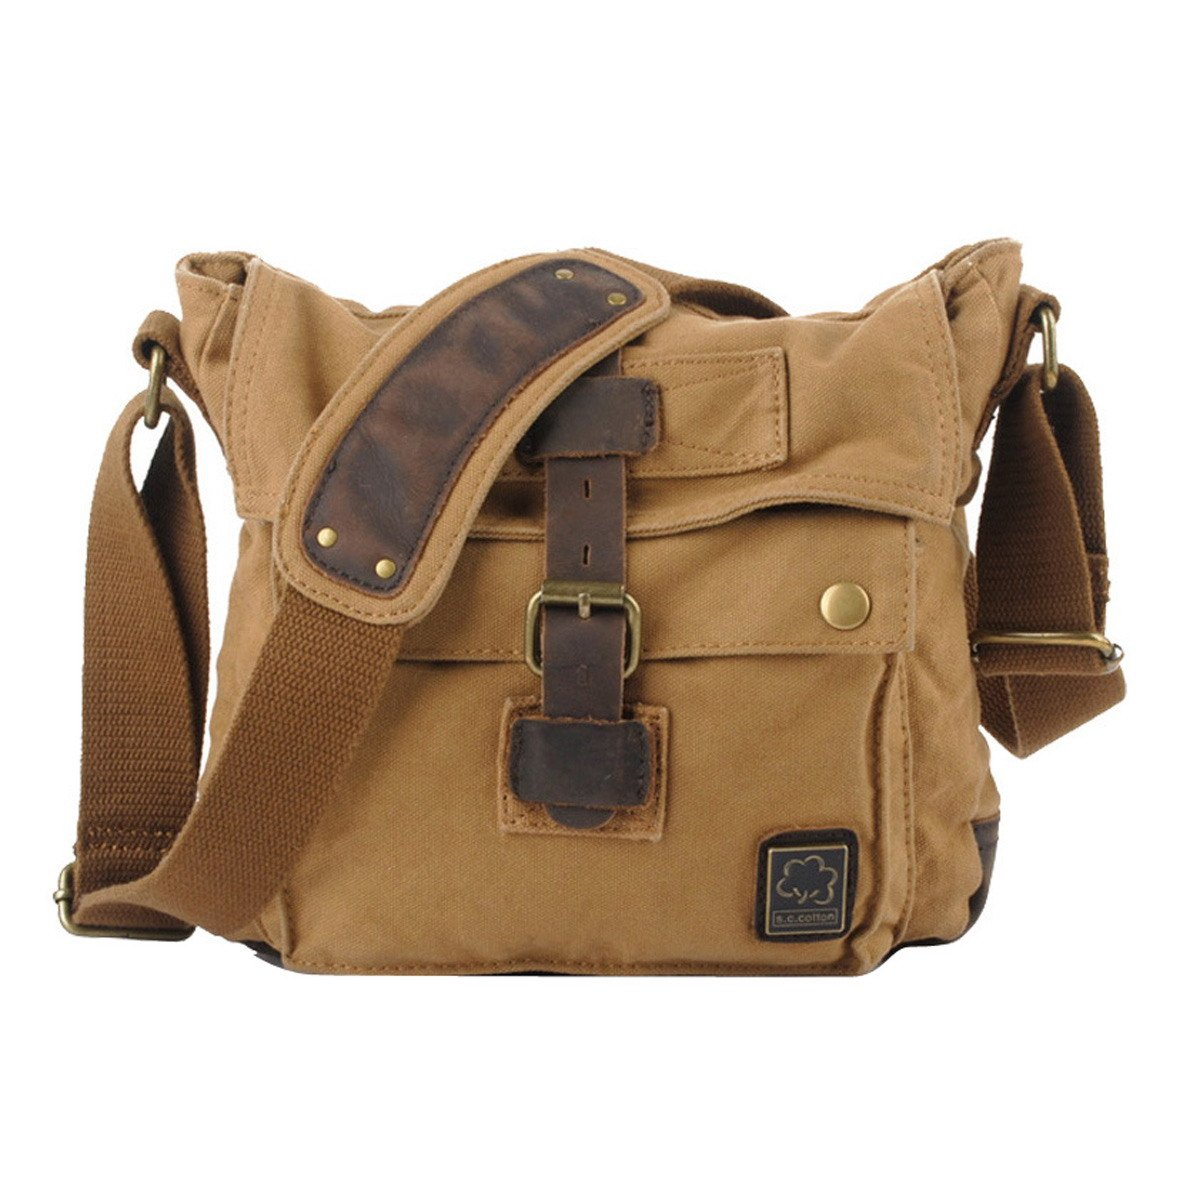 afe4d2fdd9 S.C.Cotton Canvas Fashionable Single Shoulder Messenger Bag Purse with  Durable Strap - Earthy Yellow